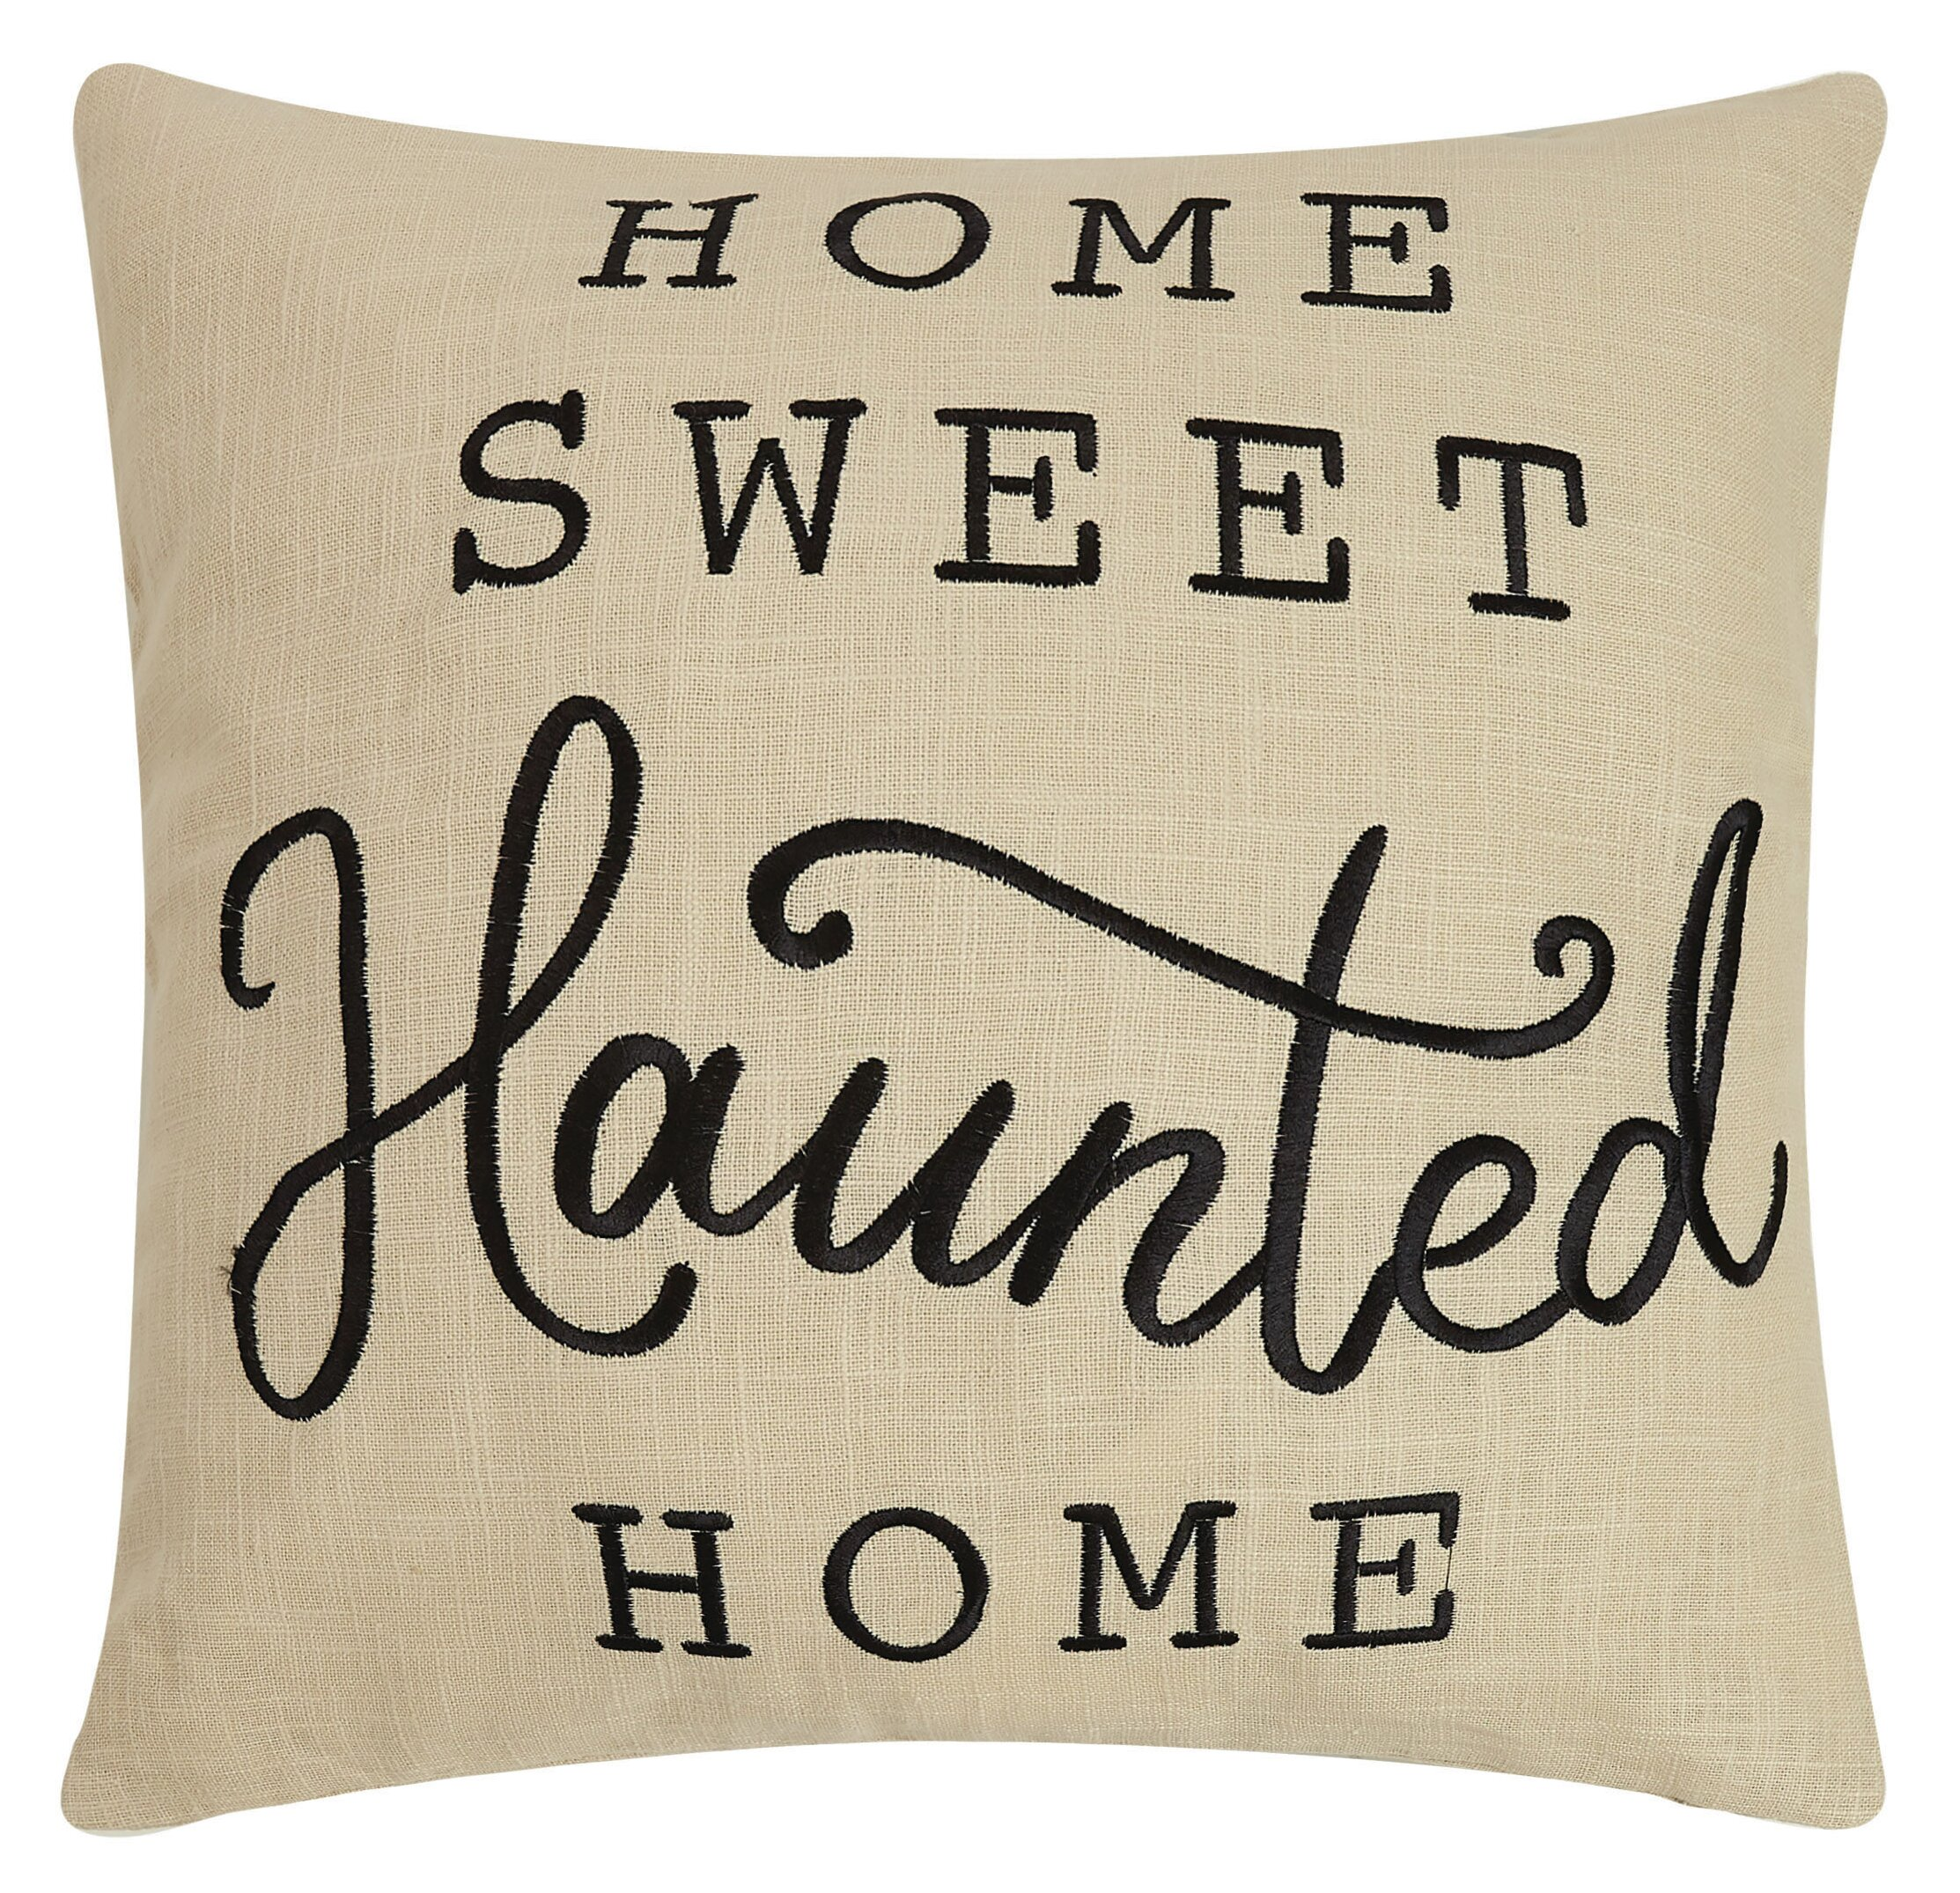 The Holiday Aisle Ressler Home Sweet Haunted Home Embroidered Throw Pillow Wayfair